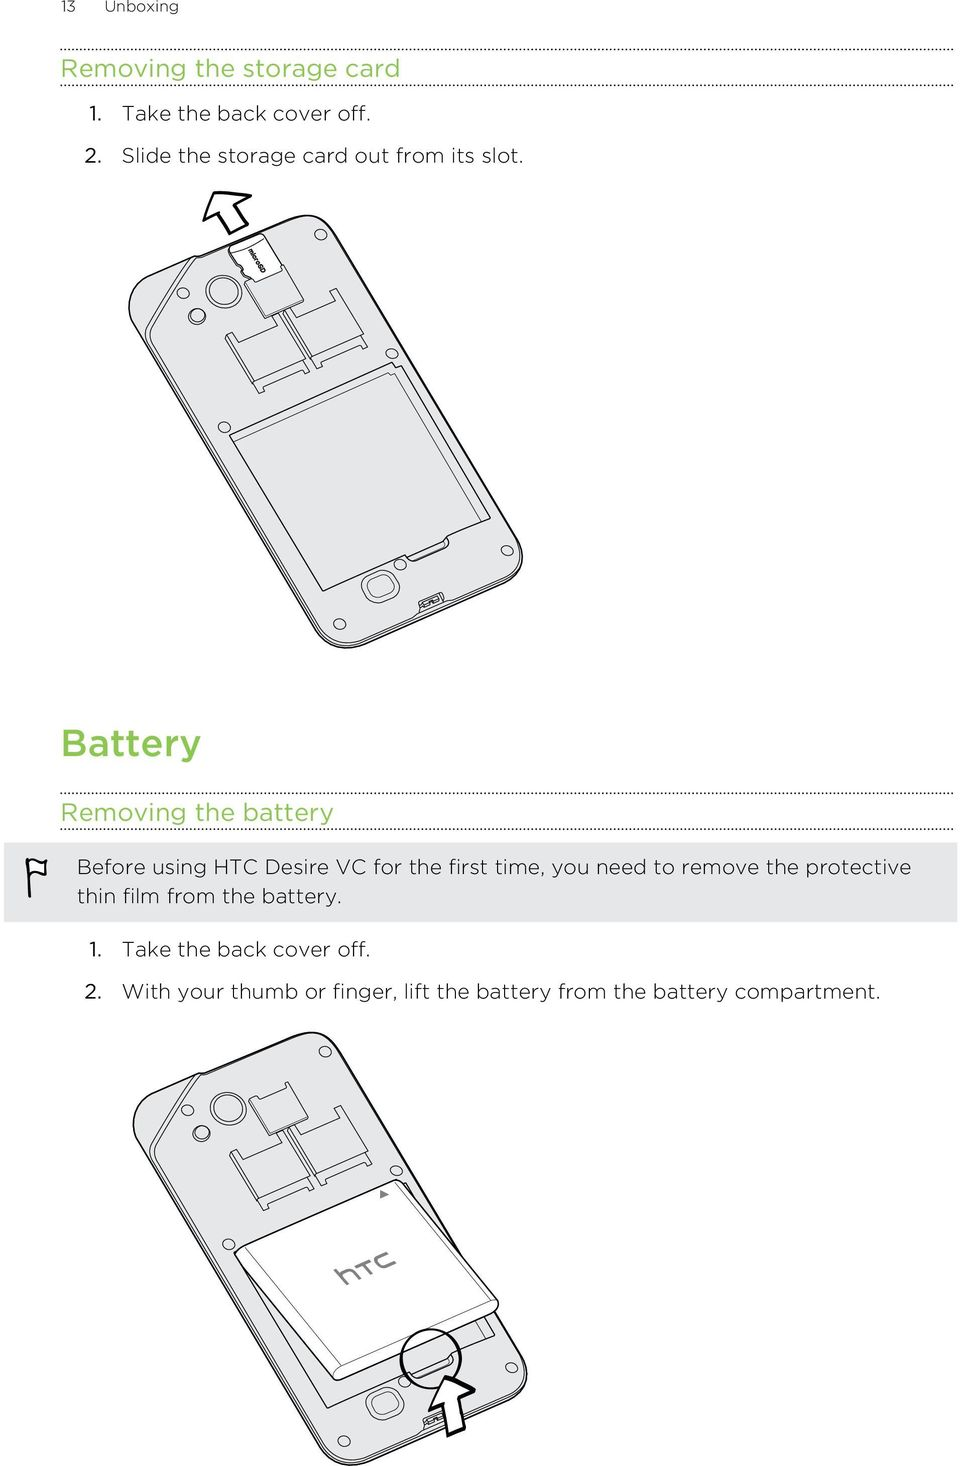 Battery Removing the battery Before using HTC Desire VC for the first time, you need to